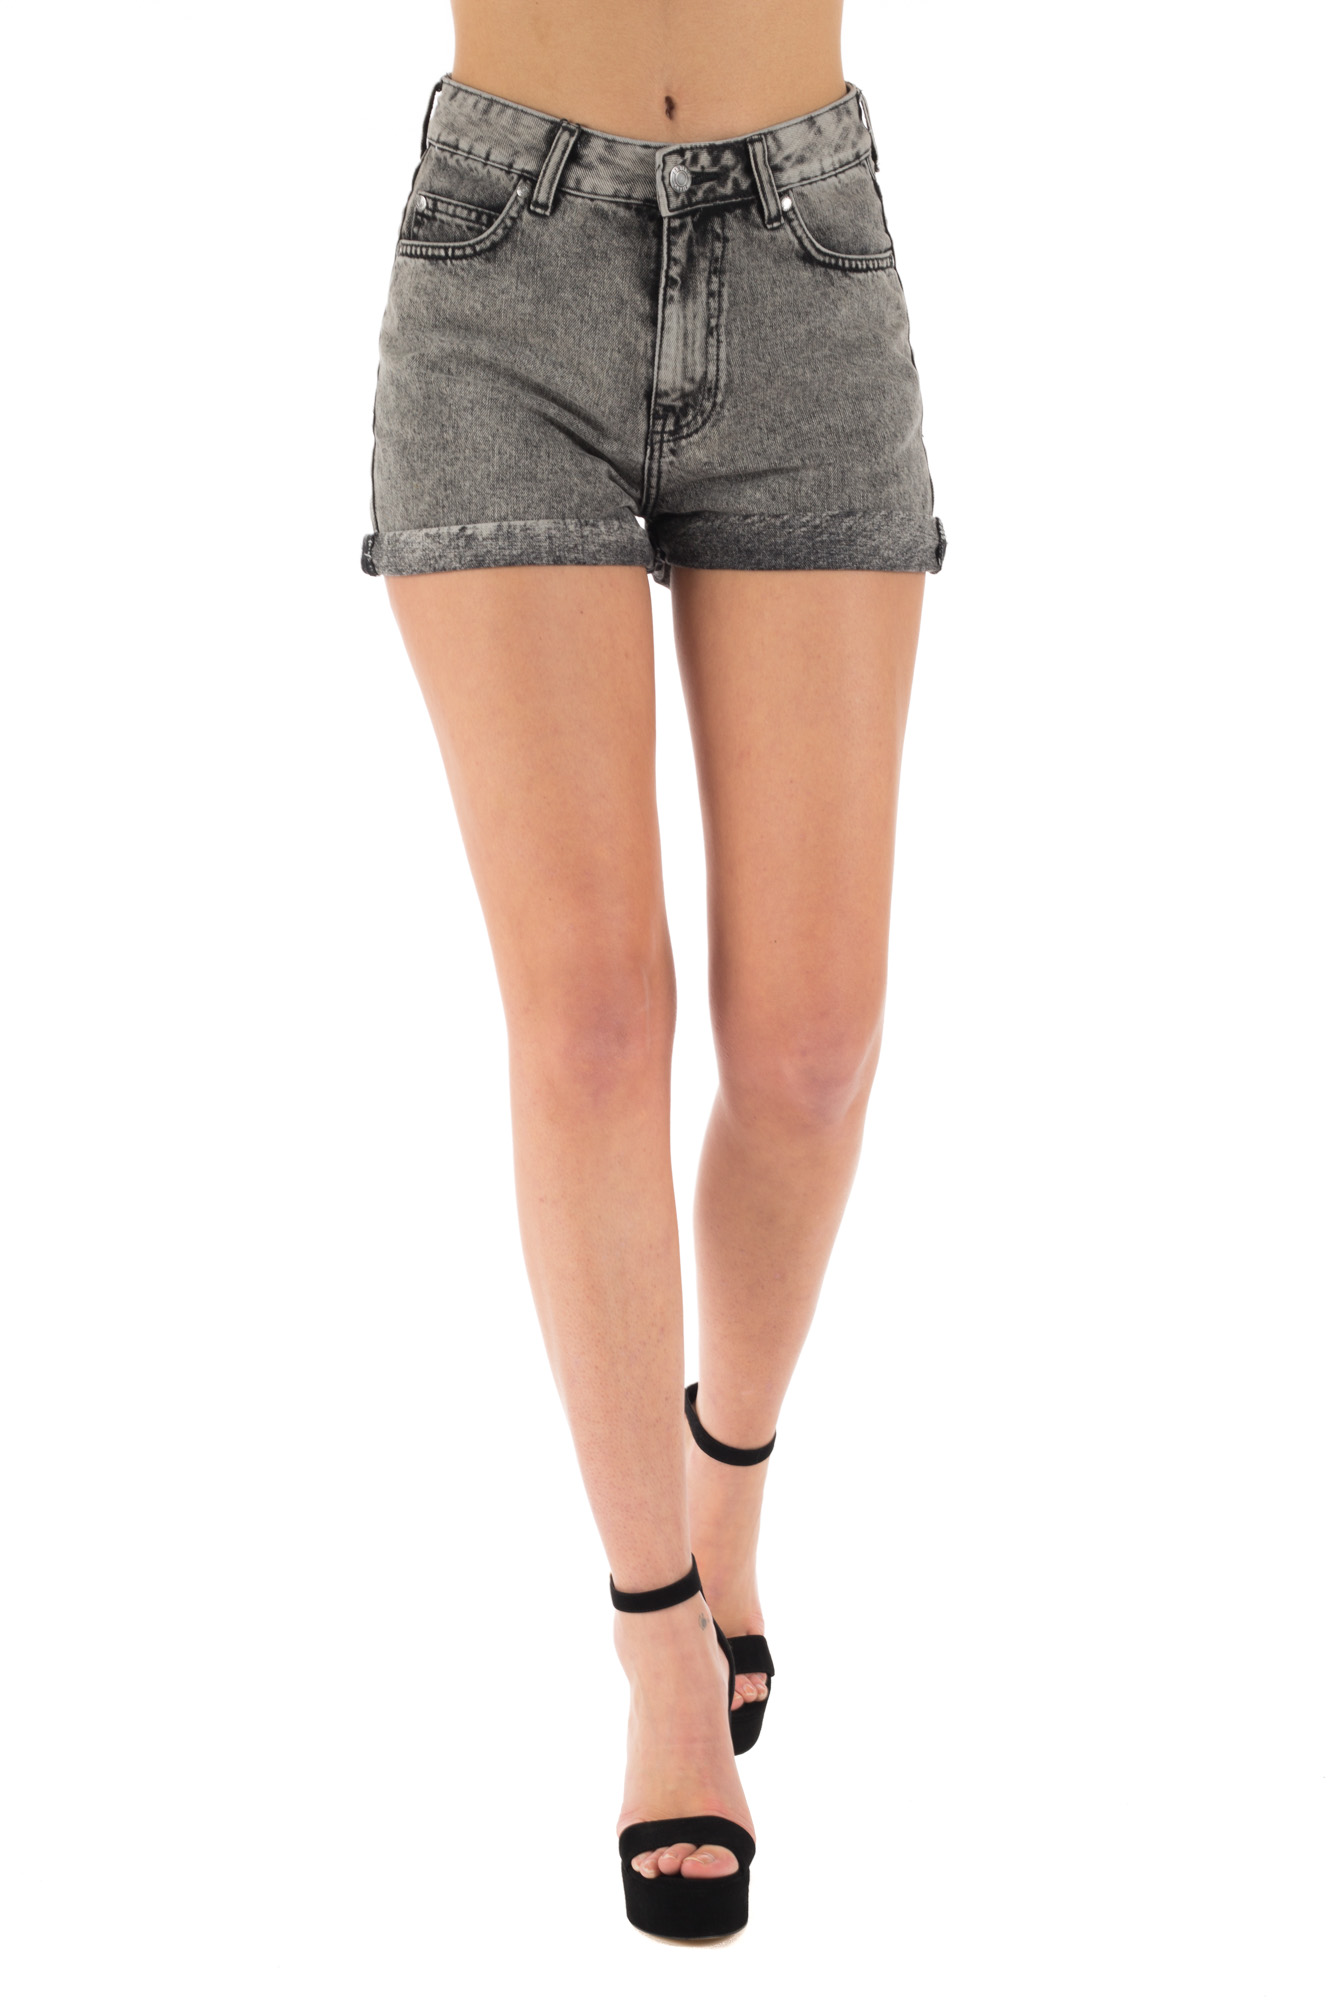 Dr. Denim - Grey denim shorts with ripps